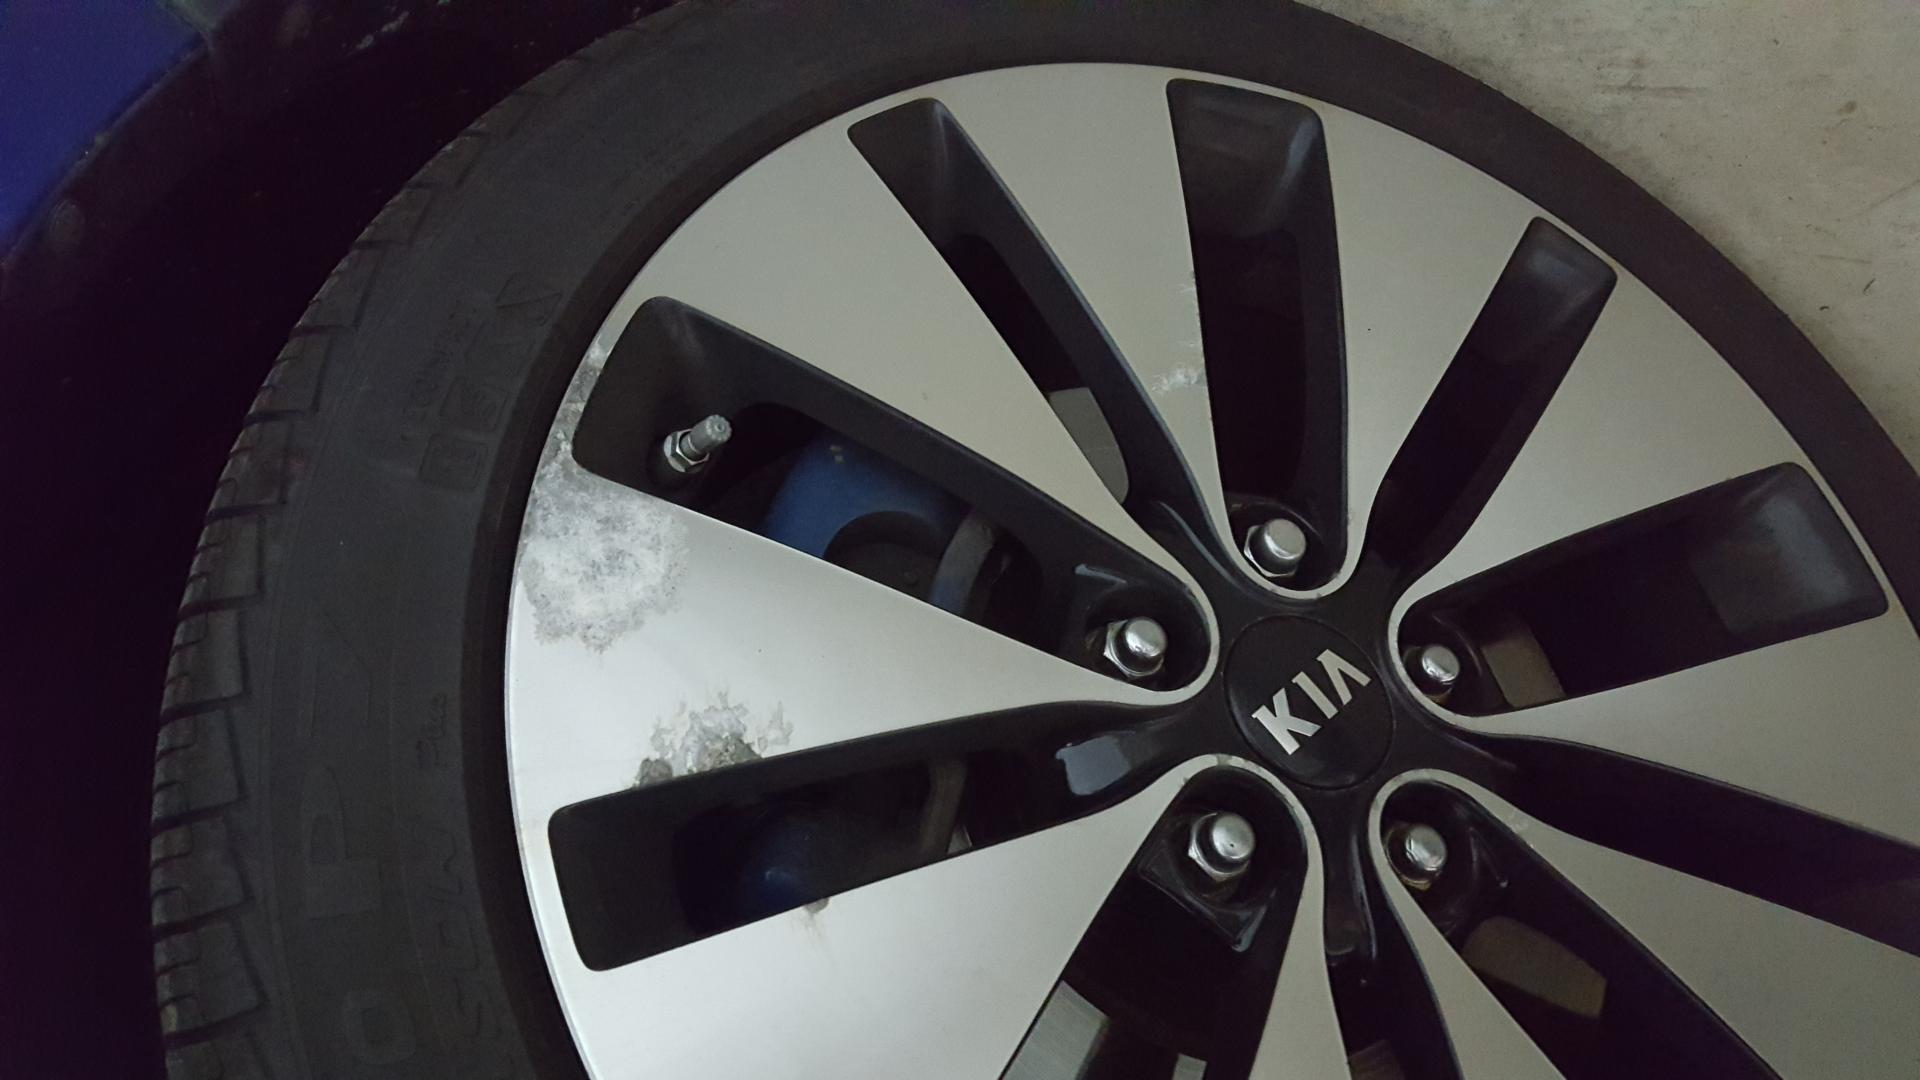 What should I do? Wheel corrosion before I get rid of the car-d7068166-bd18-483a-88ab-4ae35f19aee6.jpg